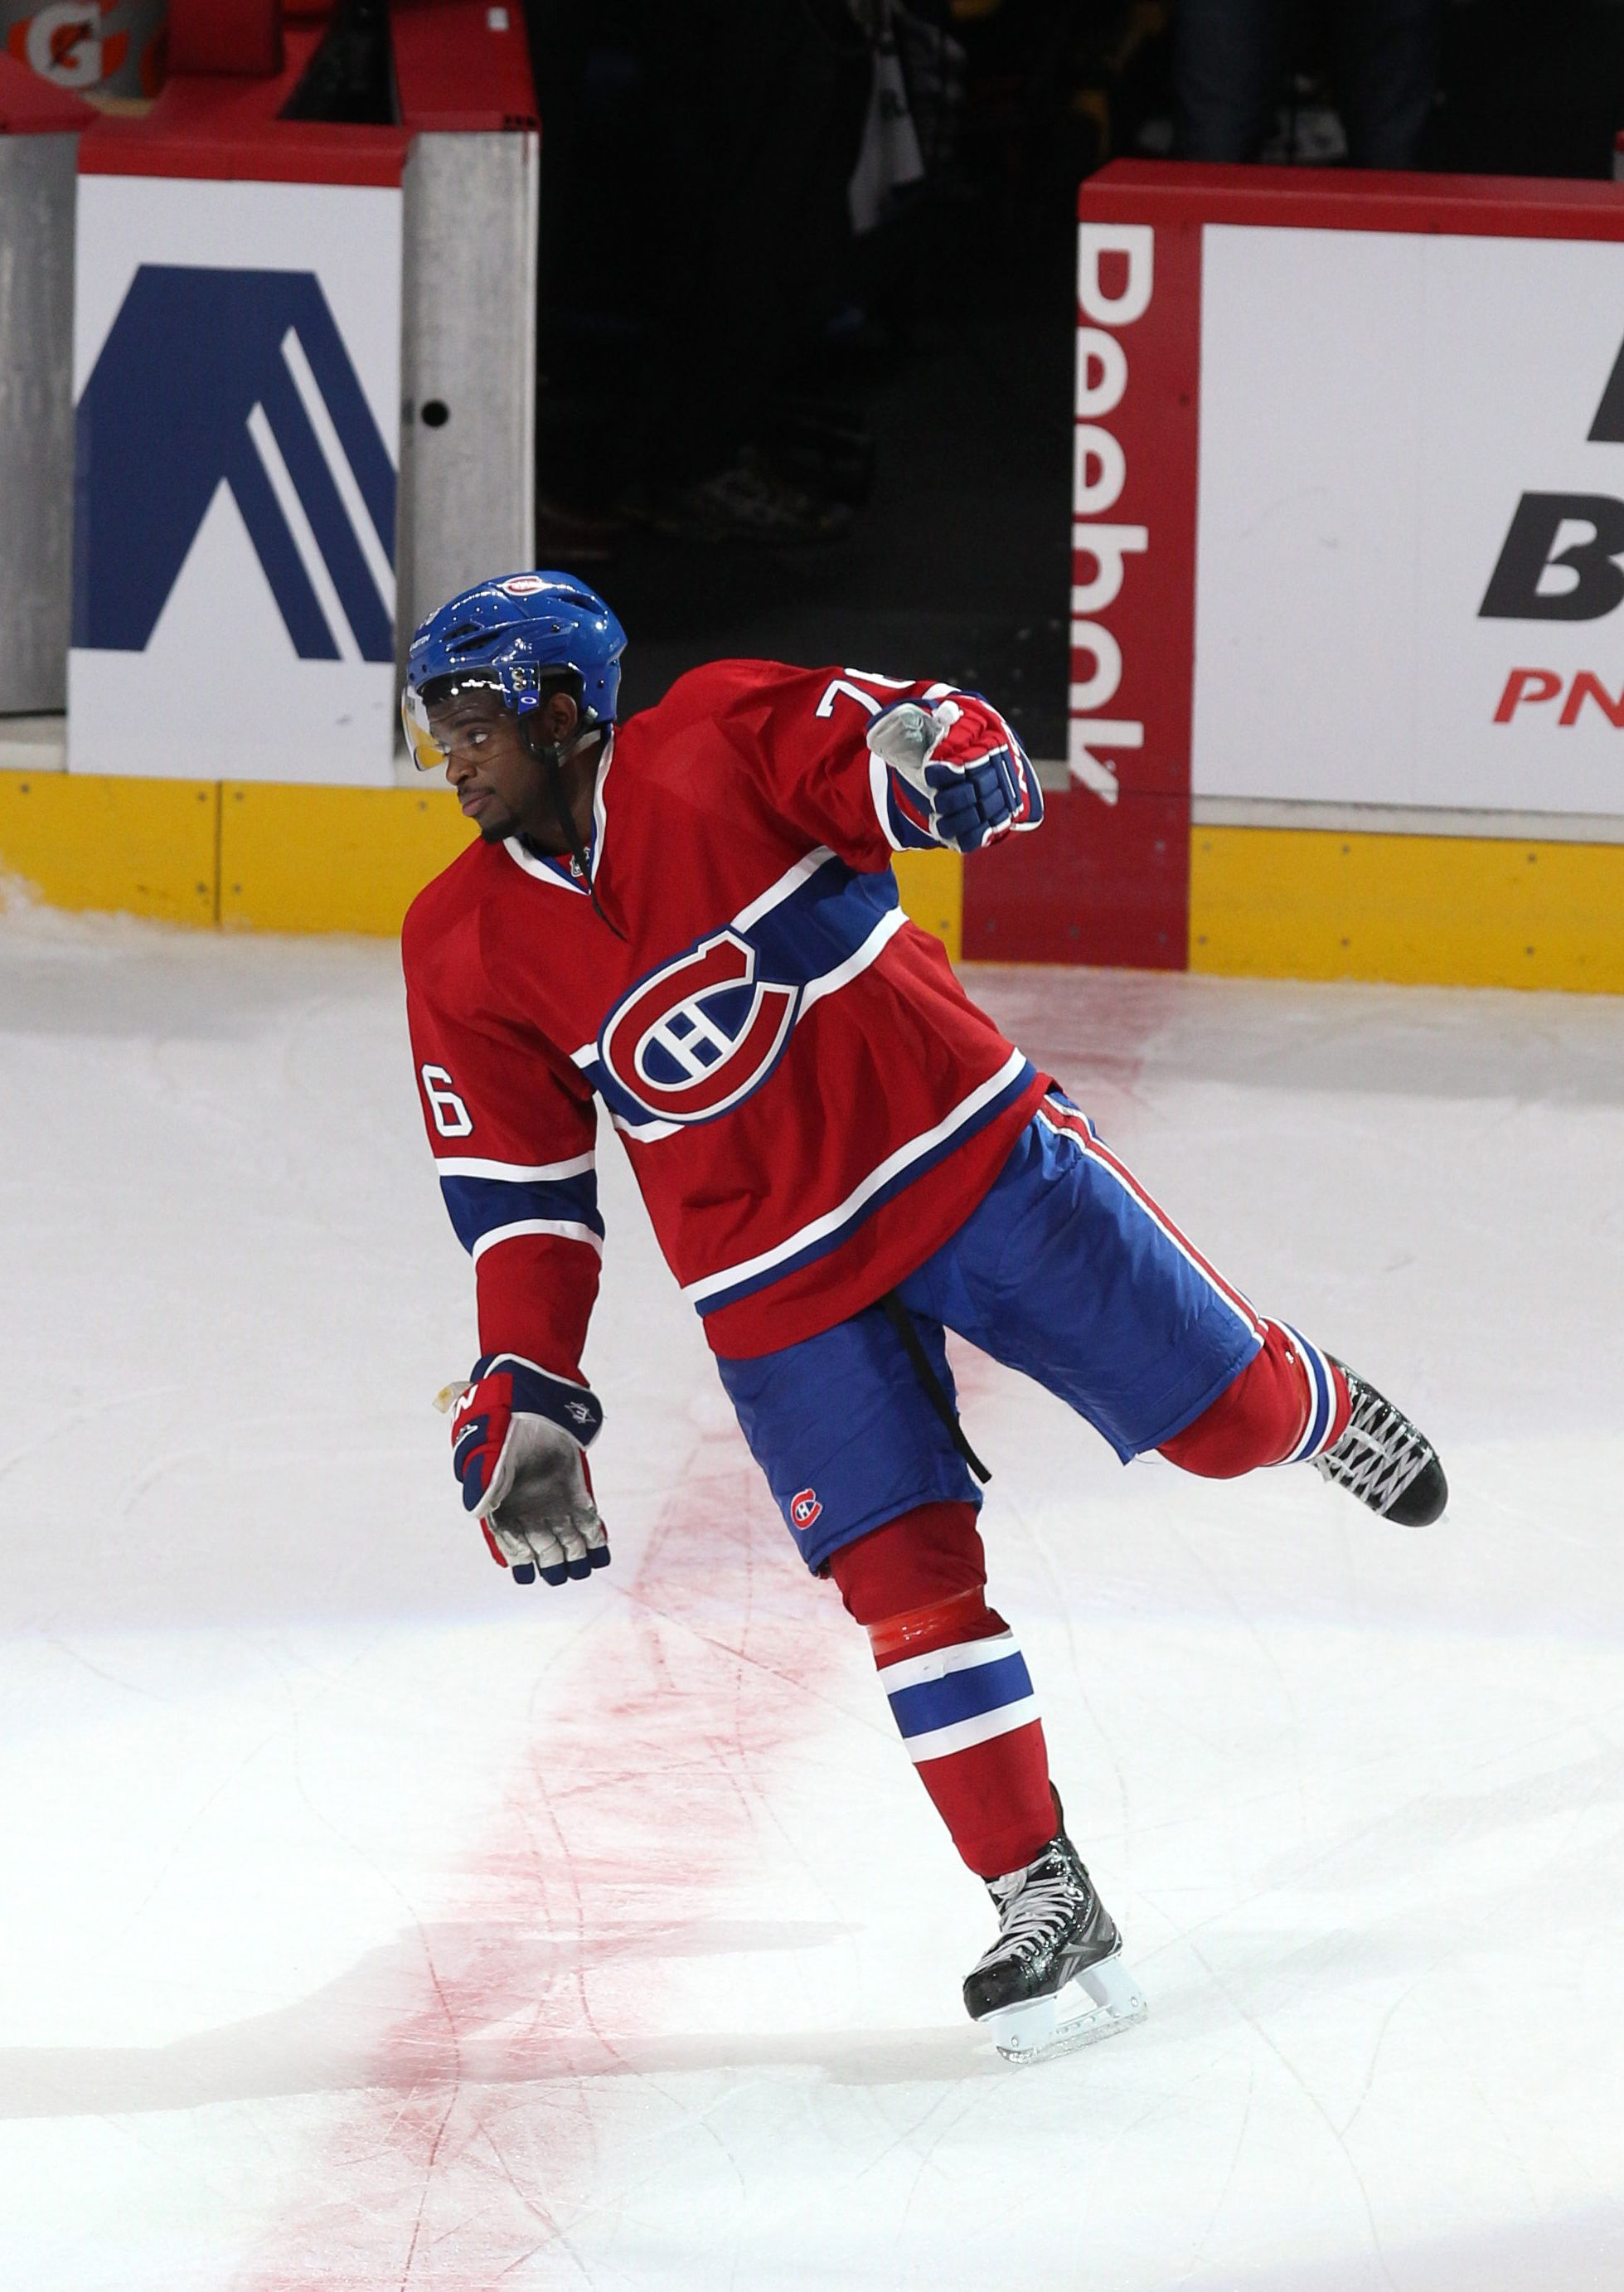 1d0c04961bb CrowdCam Hot Shot: Montreal Canadiens defenseman P.K.Subban is named second  star of the game against New Jersey Devils at the Bell Centre. Photo by Jean